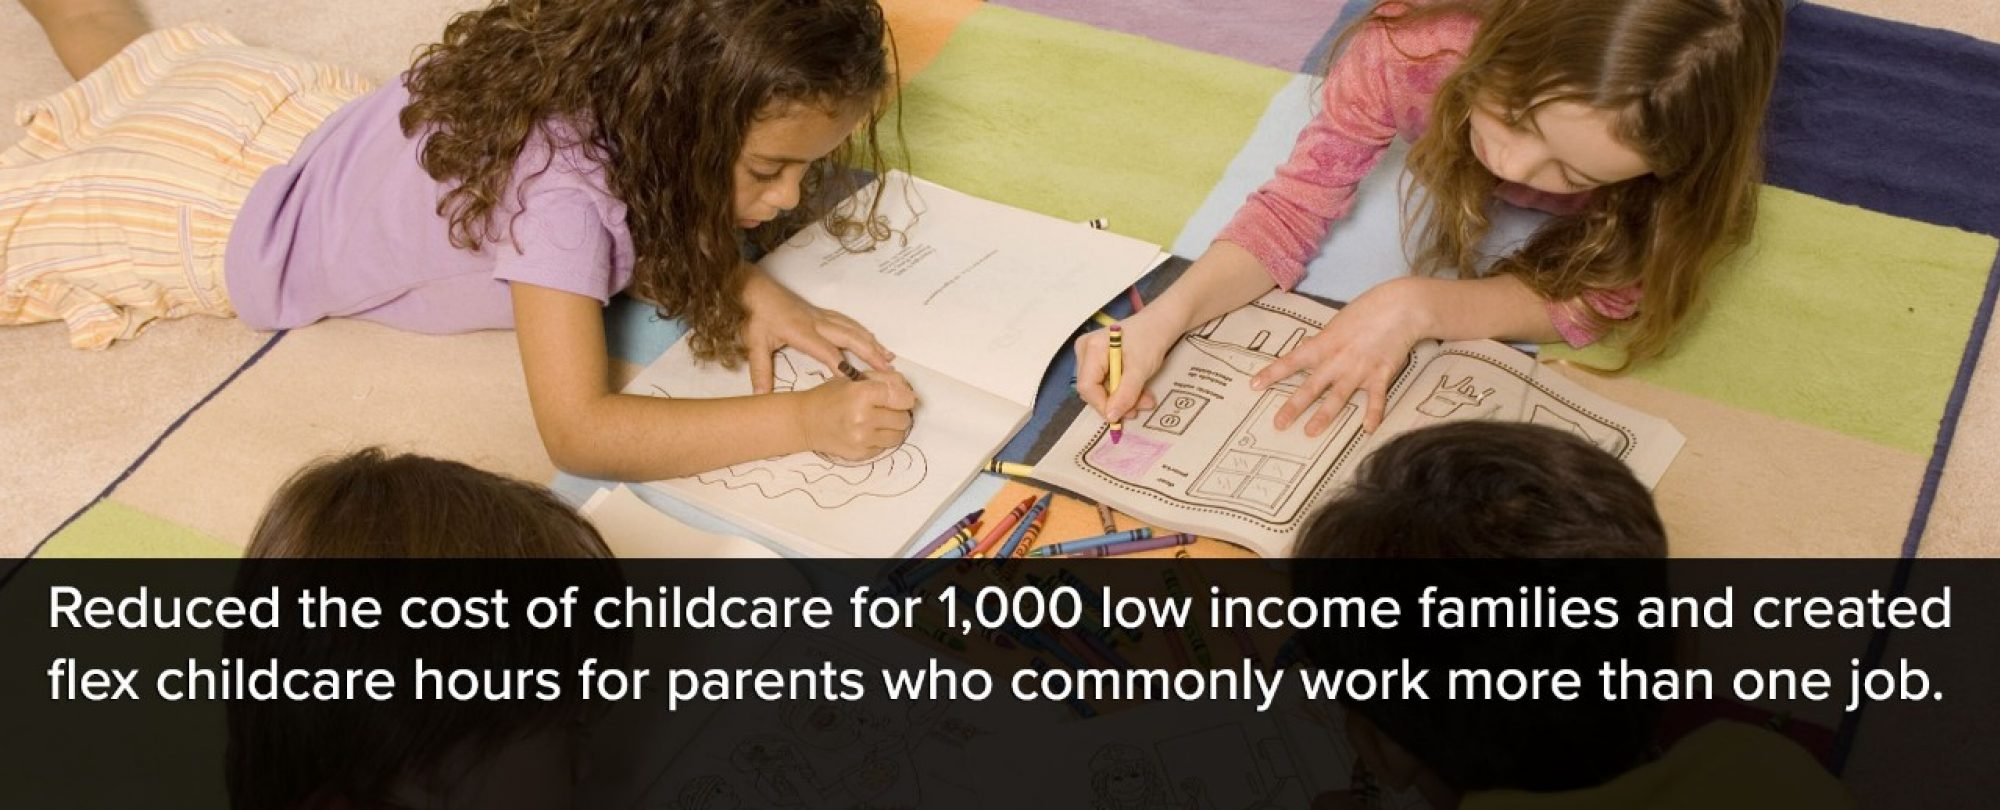 Photo of young children coloring. Denver reduced the cost of childcare for 1,000 low income families and created flex childcare hours for parents who commonly work more than one job.